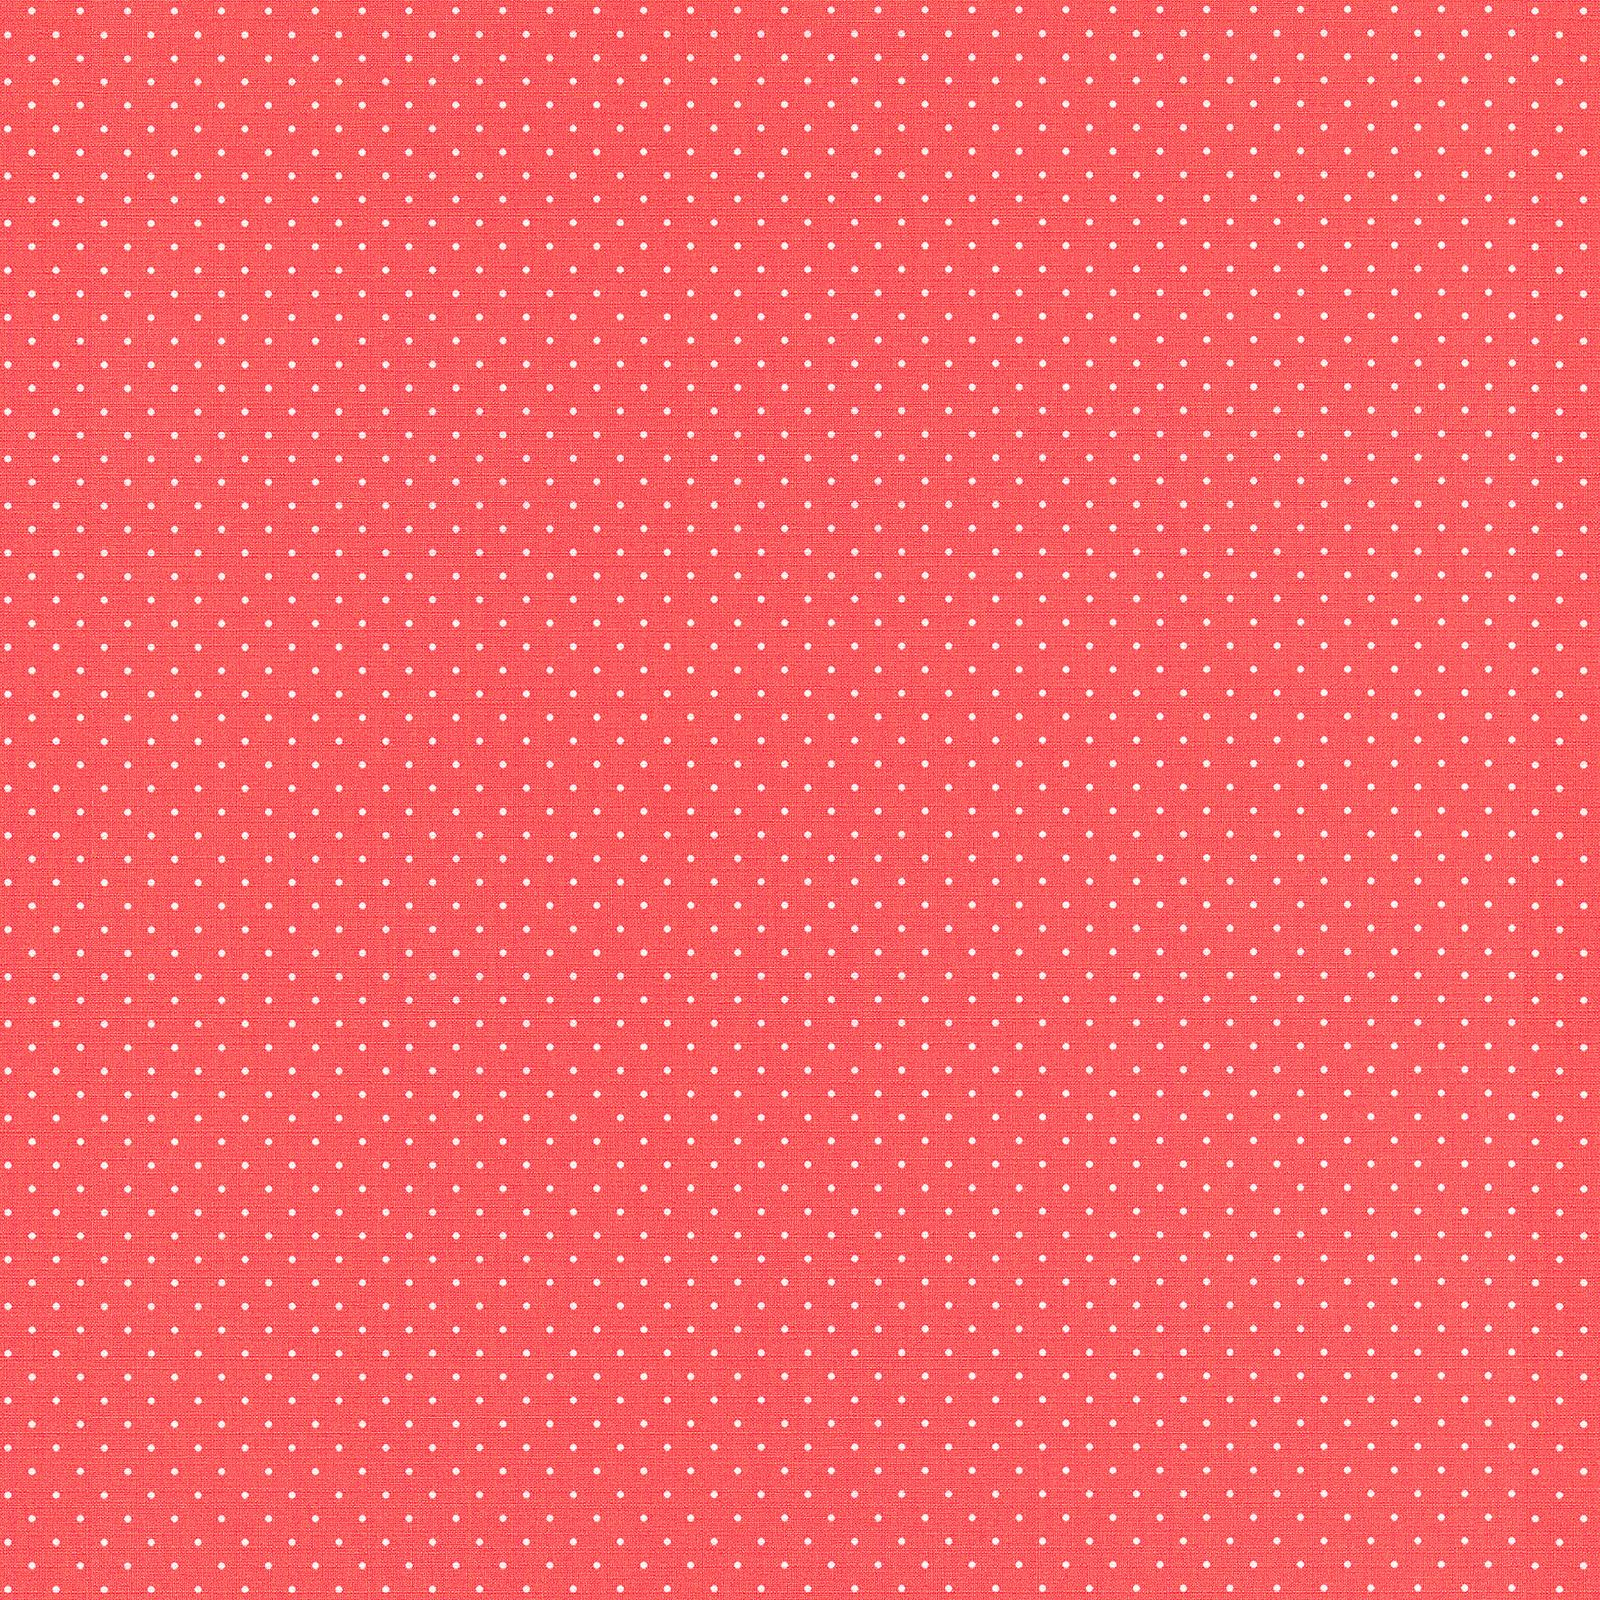 1600x1600 Details about RED / WHITE POLKA DOT WALLPAPER - RASCH 442311 FEATURE WALL